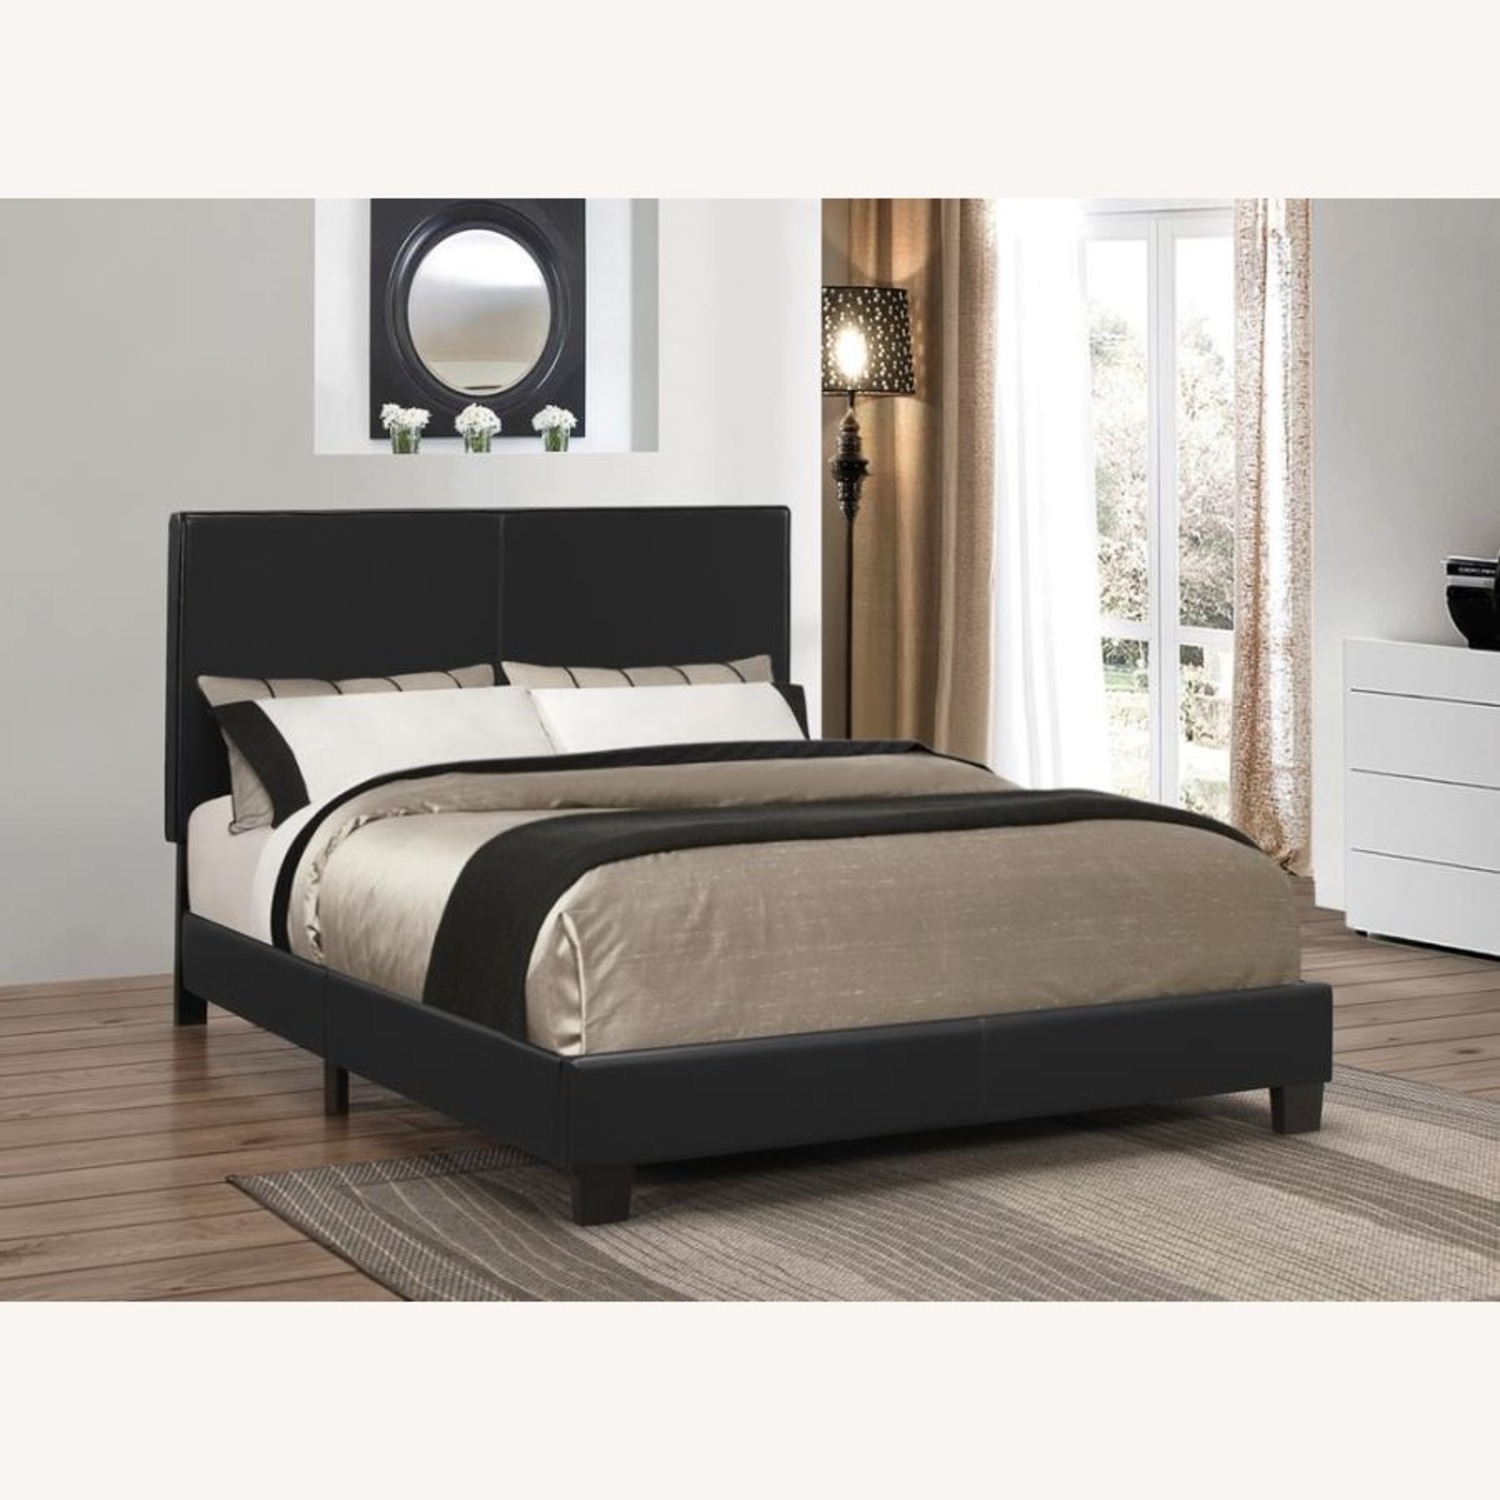 Queen Bed In Black Leatherette Upholstery - image-1